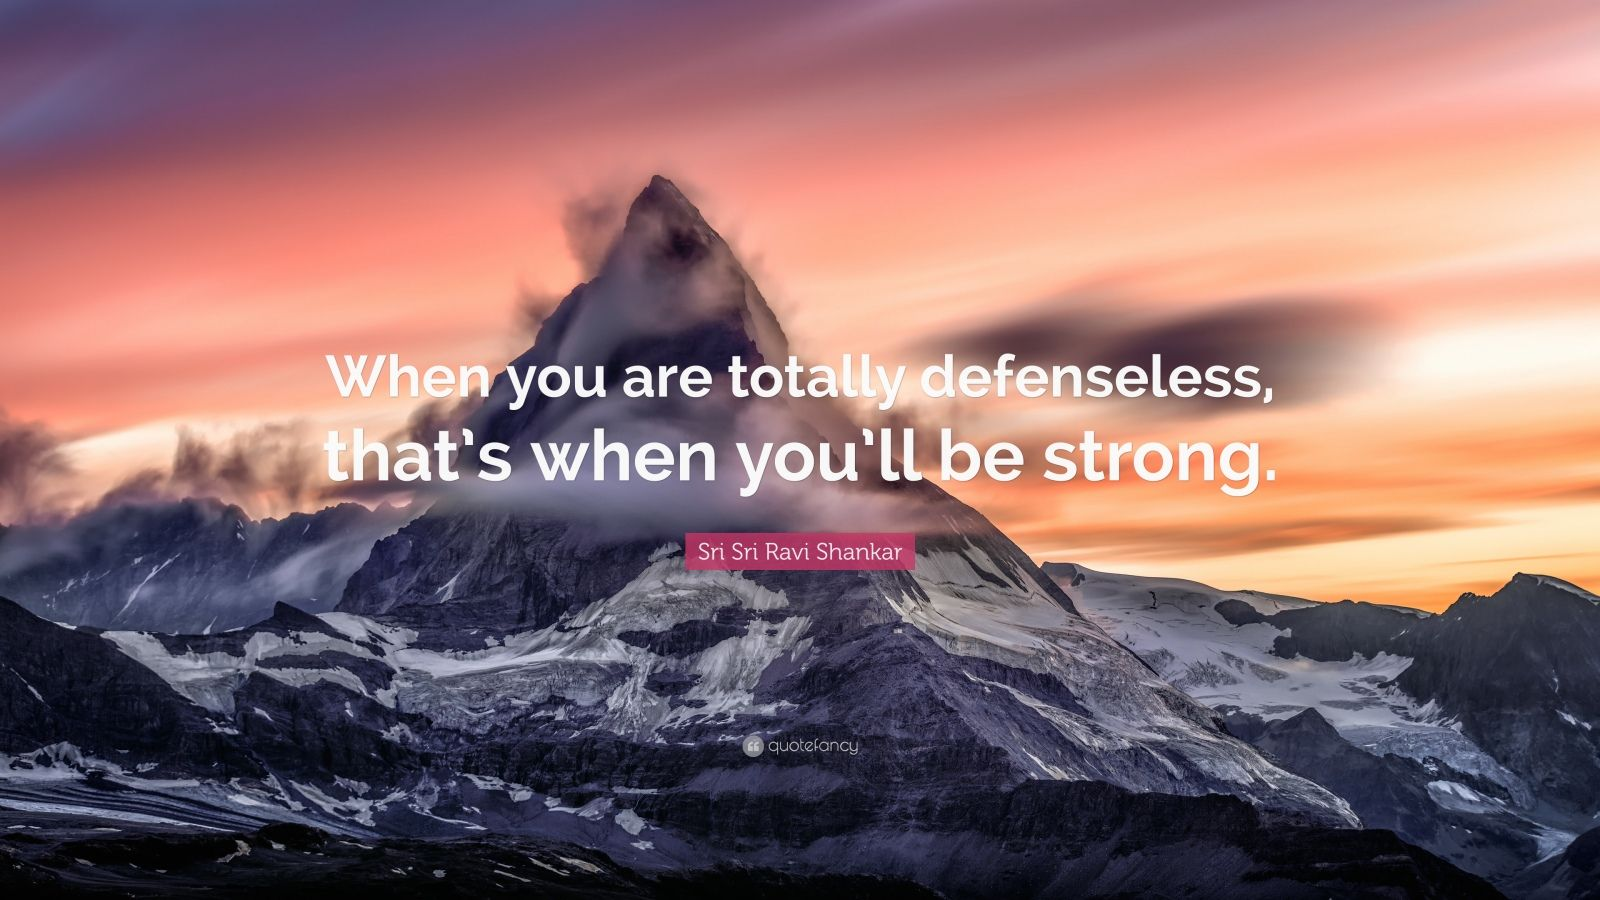 """Sri Sri Ravi Shankar Quote: """"When you are totally defenseless, that's when you'll be strong."""""""